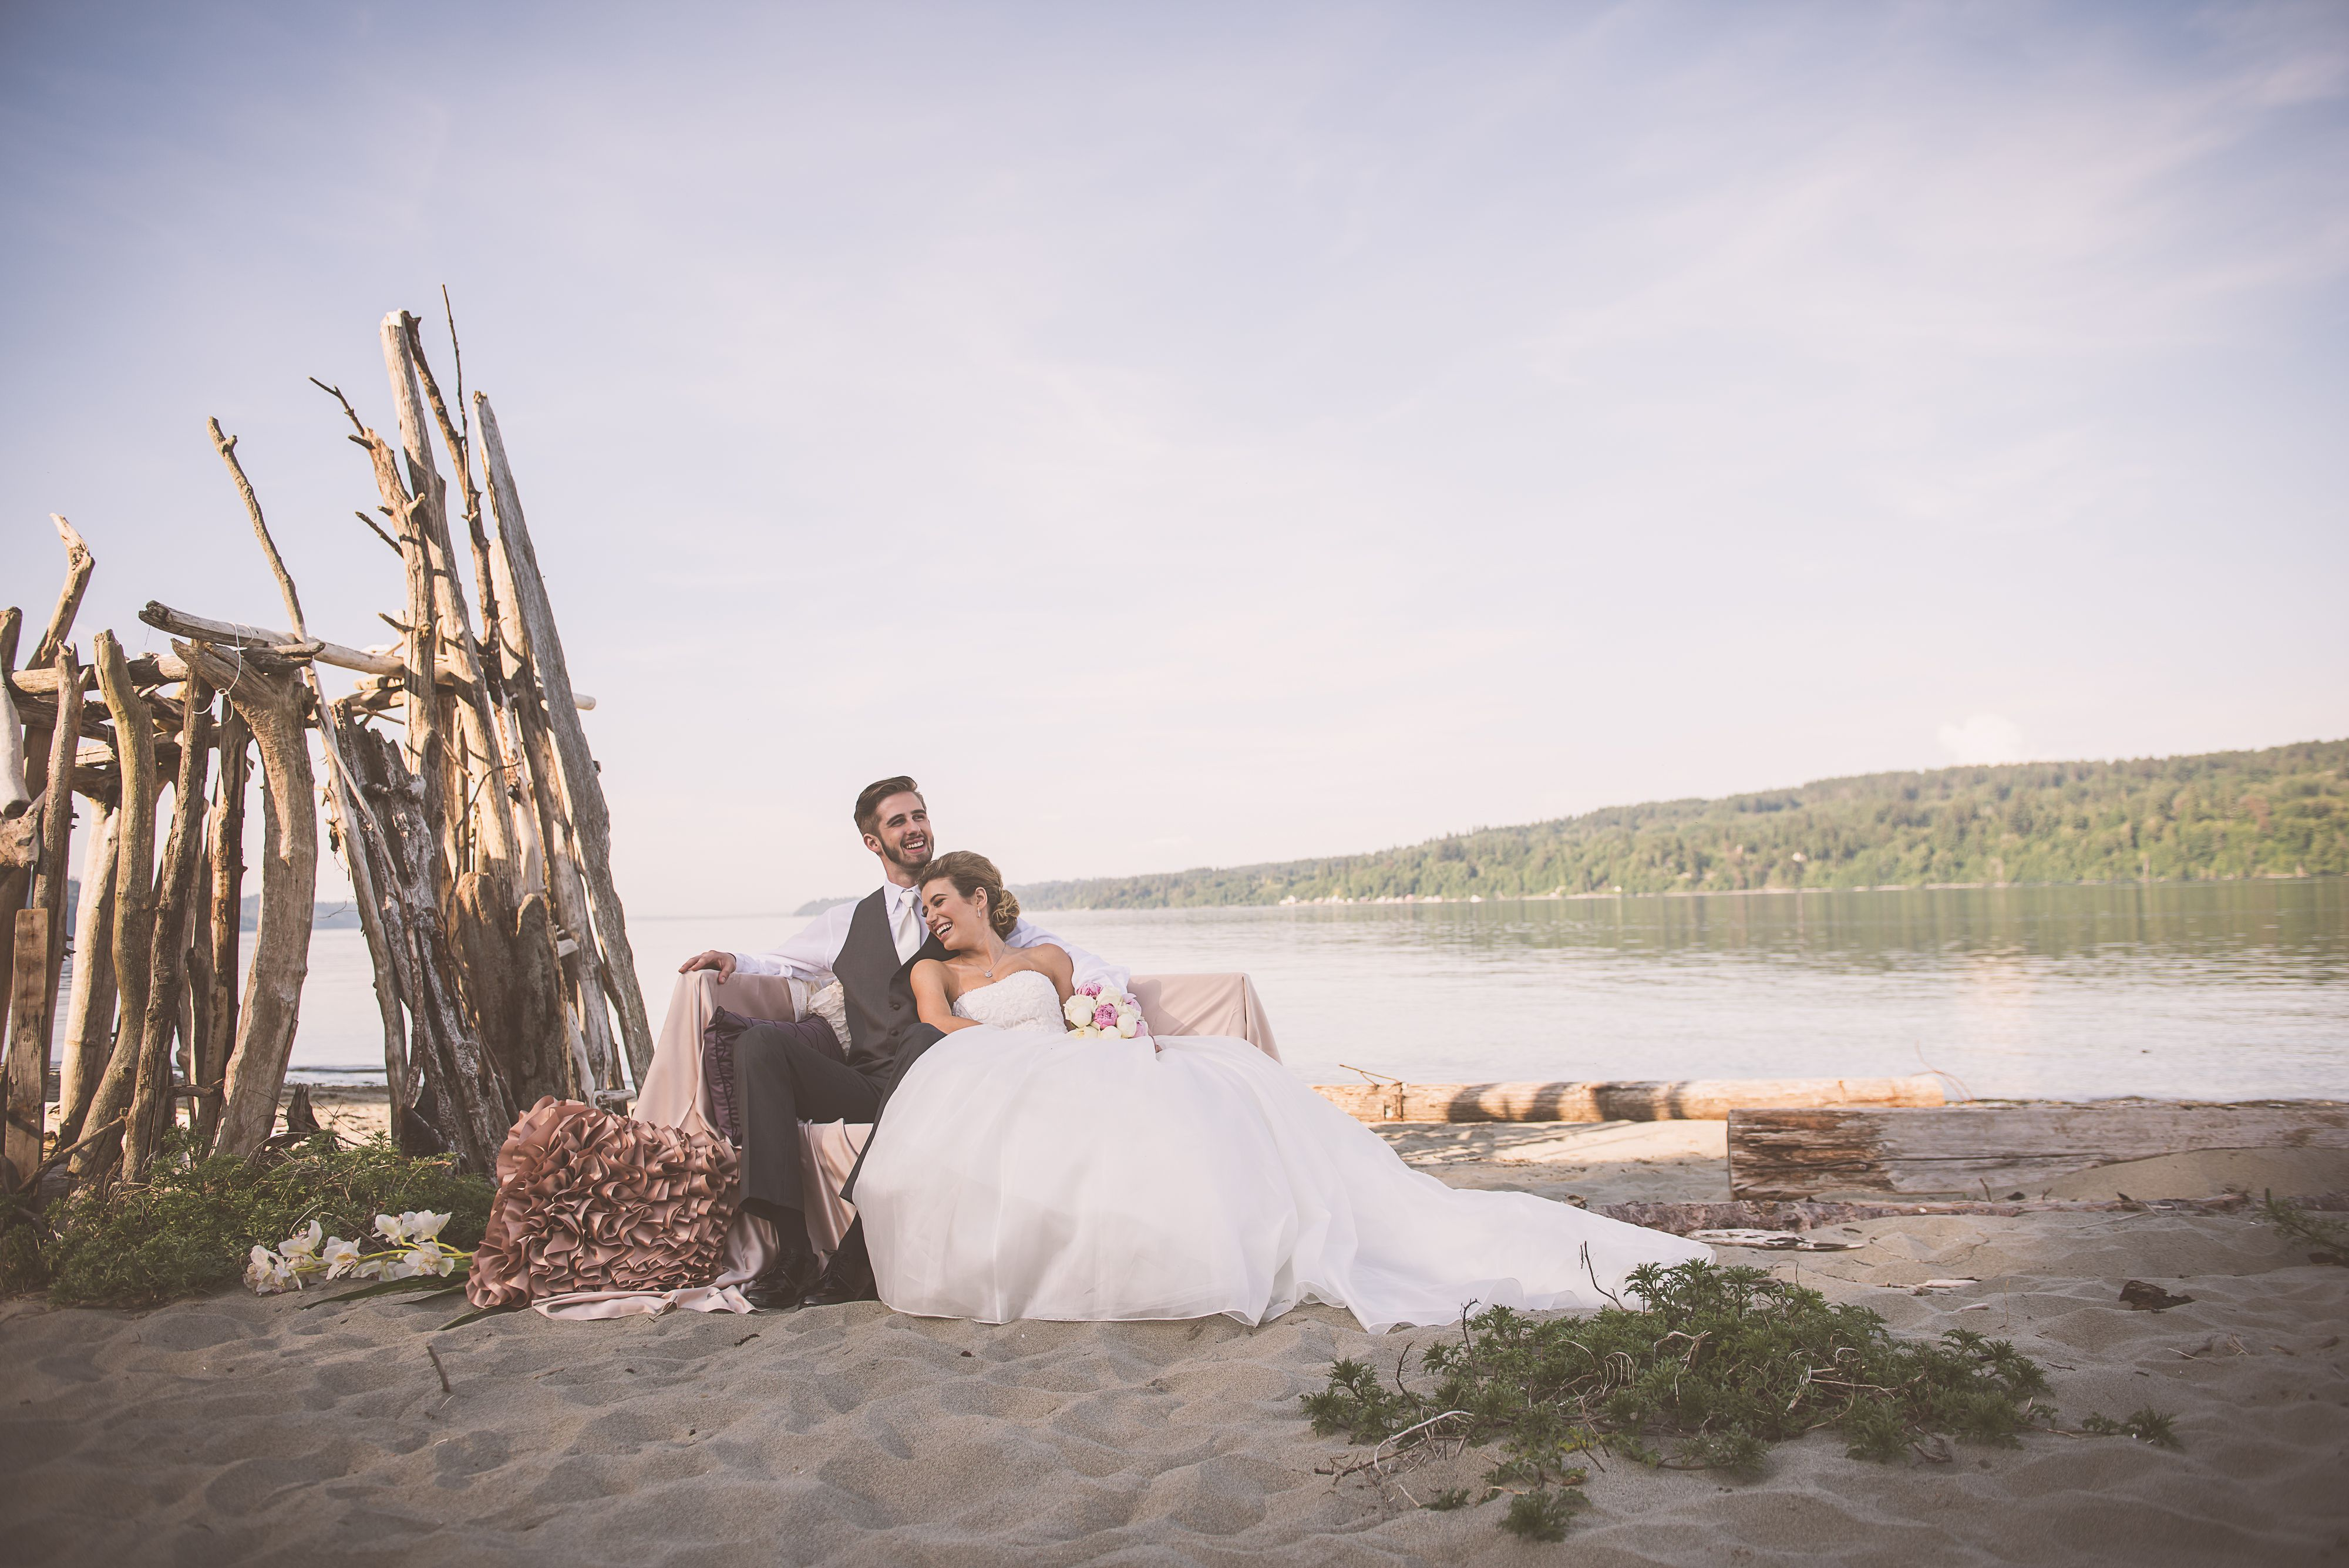 Beach Wedding Dramatic The Edgewater House Waterfront And Event Venue In Washington Real